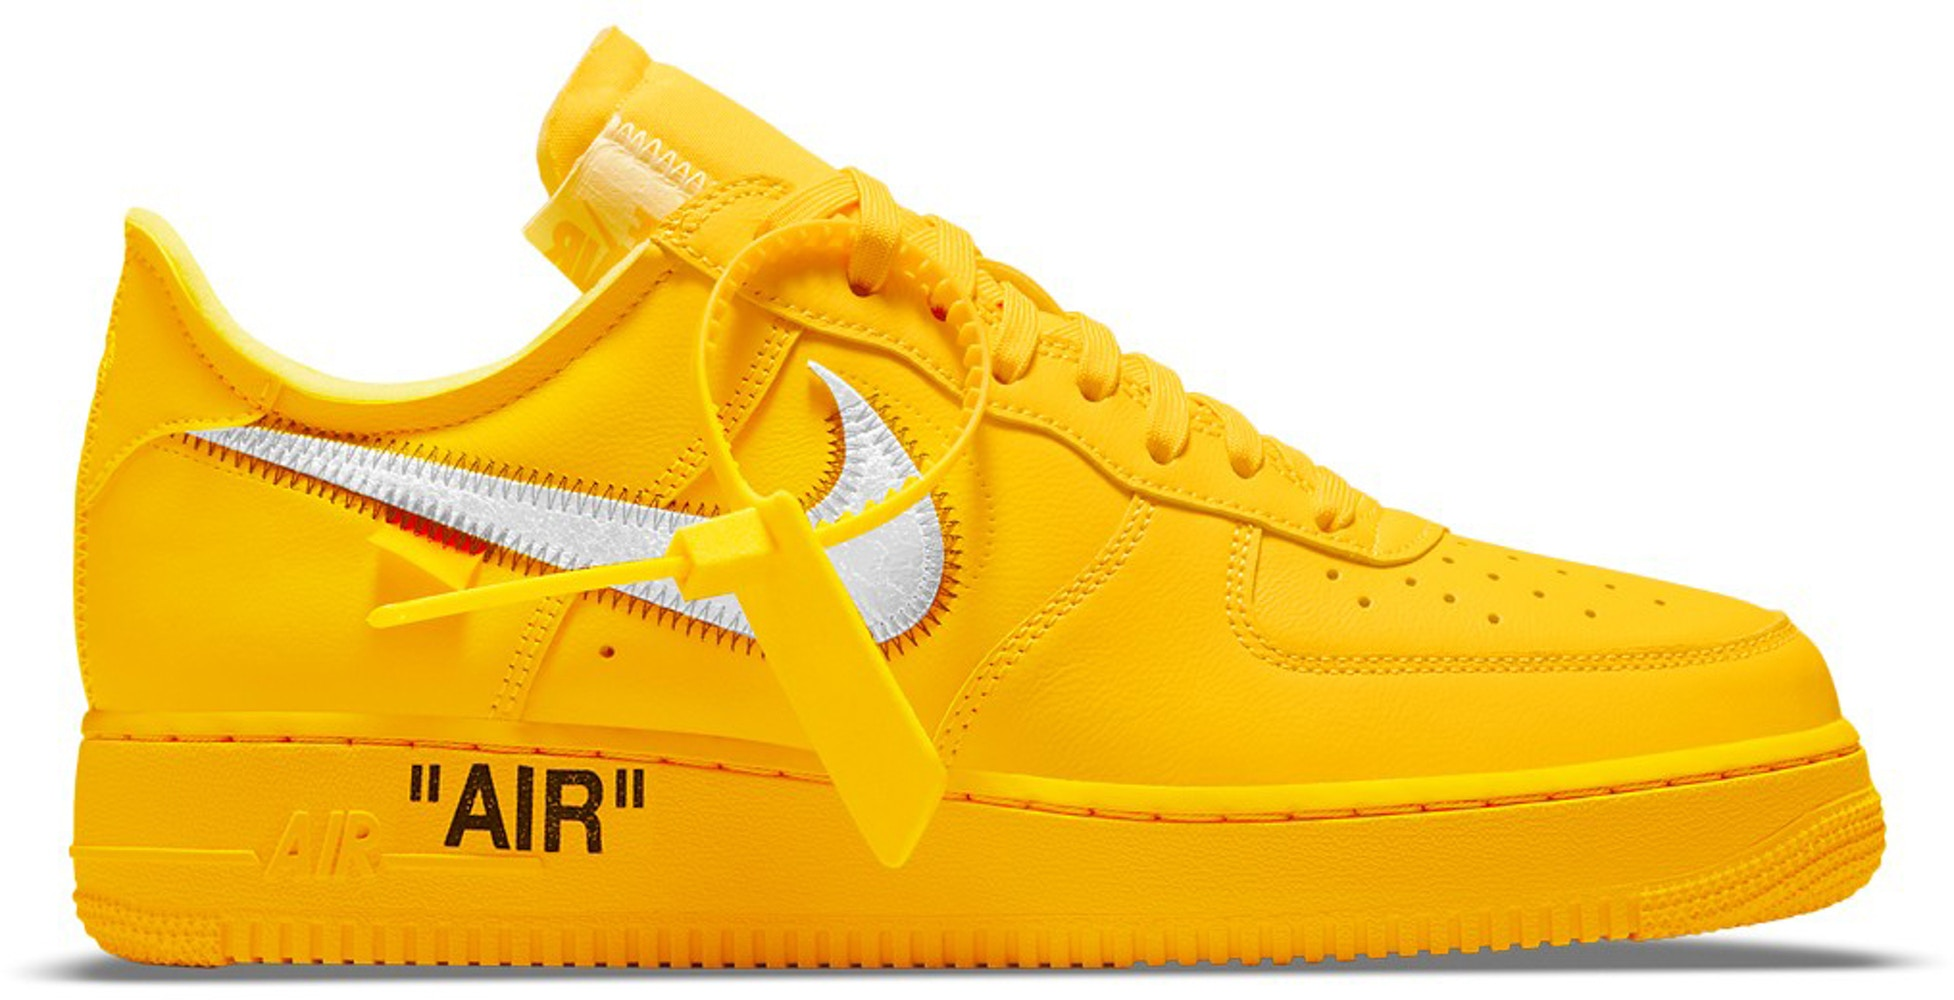 Nike Air Force 1 Low Off White University Gold Metallic Silver Dd1876 700